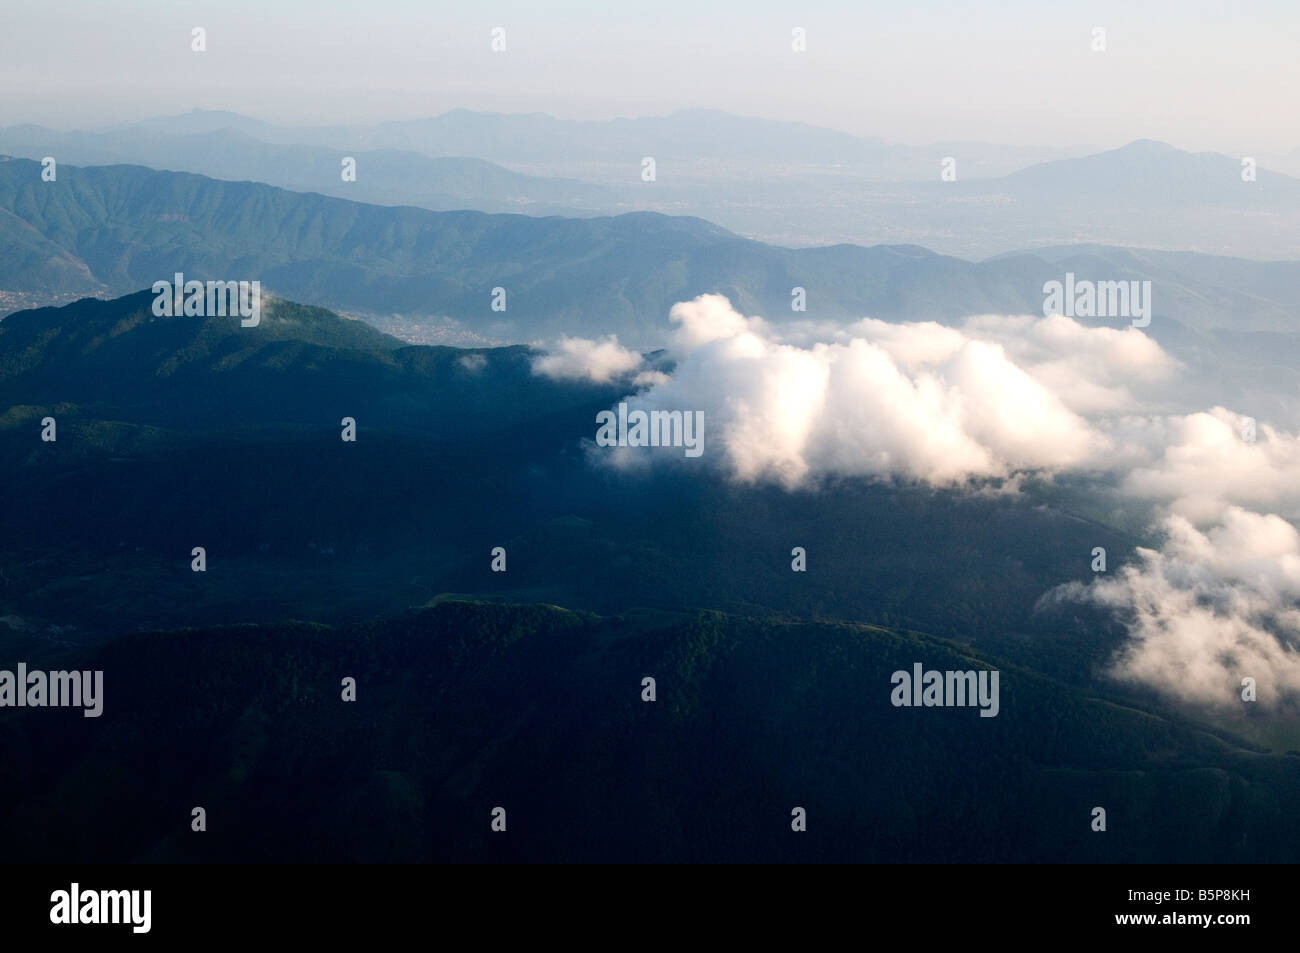 Surreal effects in the clouds as seen while overflying the volcano Vesuvius near Naples, Italy - Stock Image